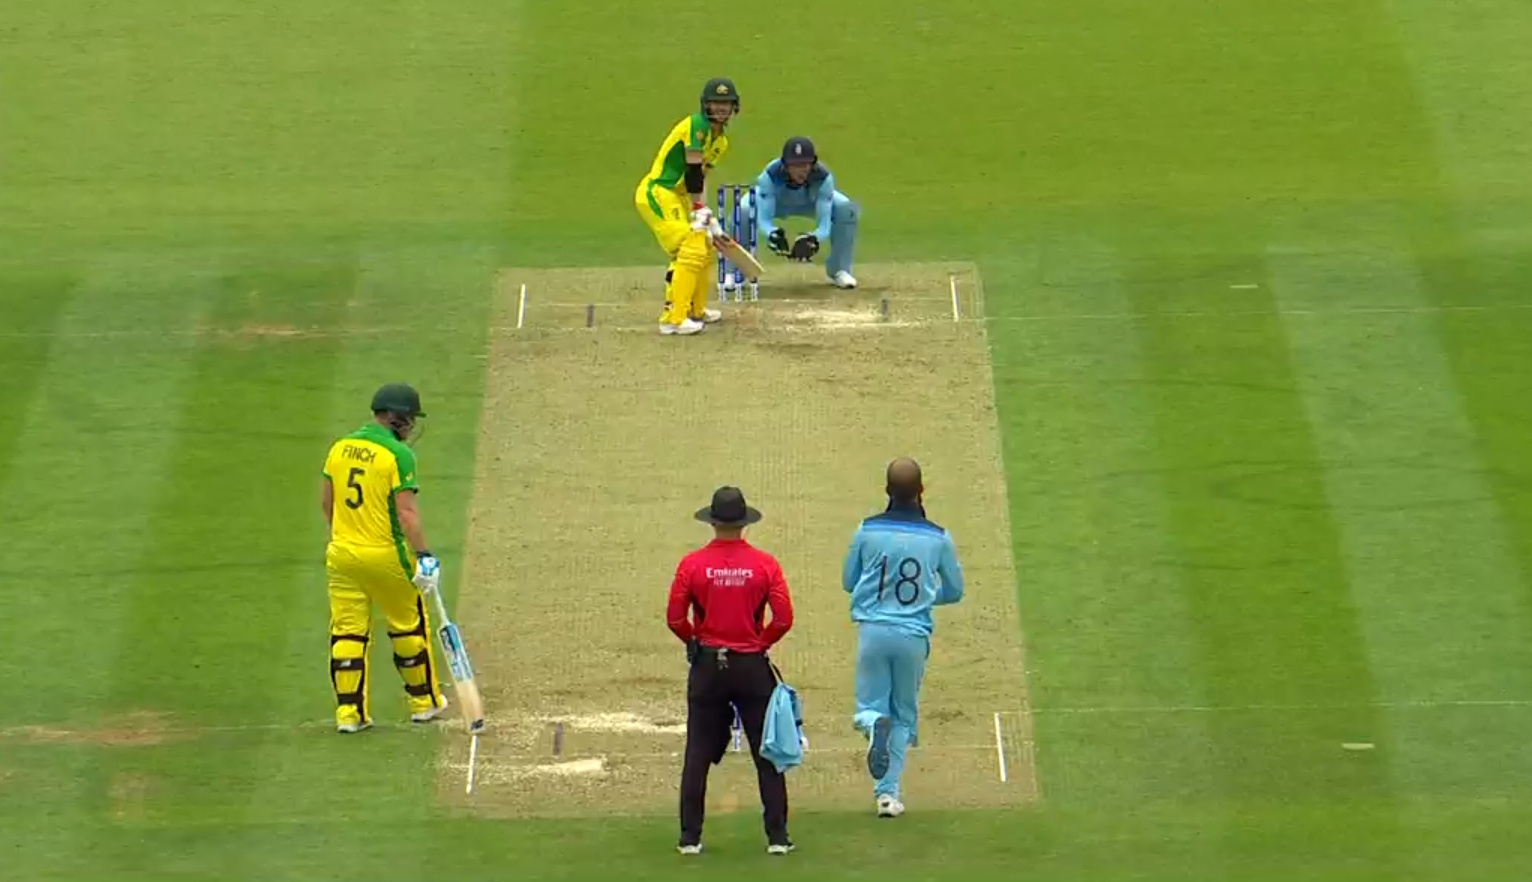 Australia Vs England 2nd Semi Final Icc World Cup Highlights